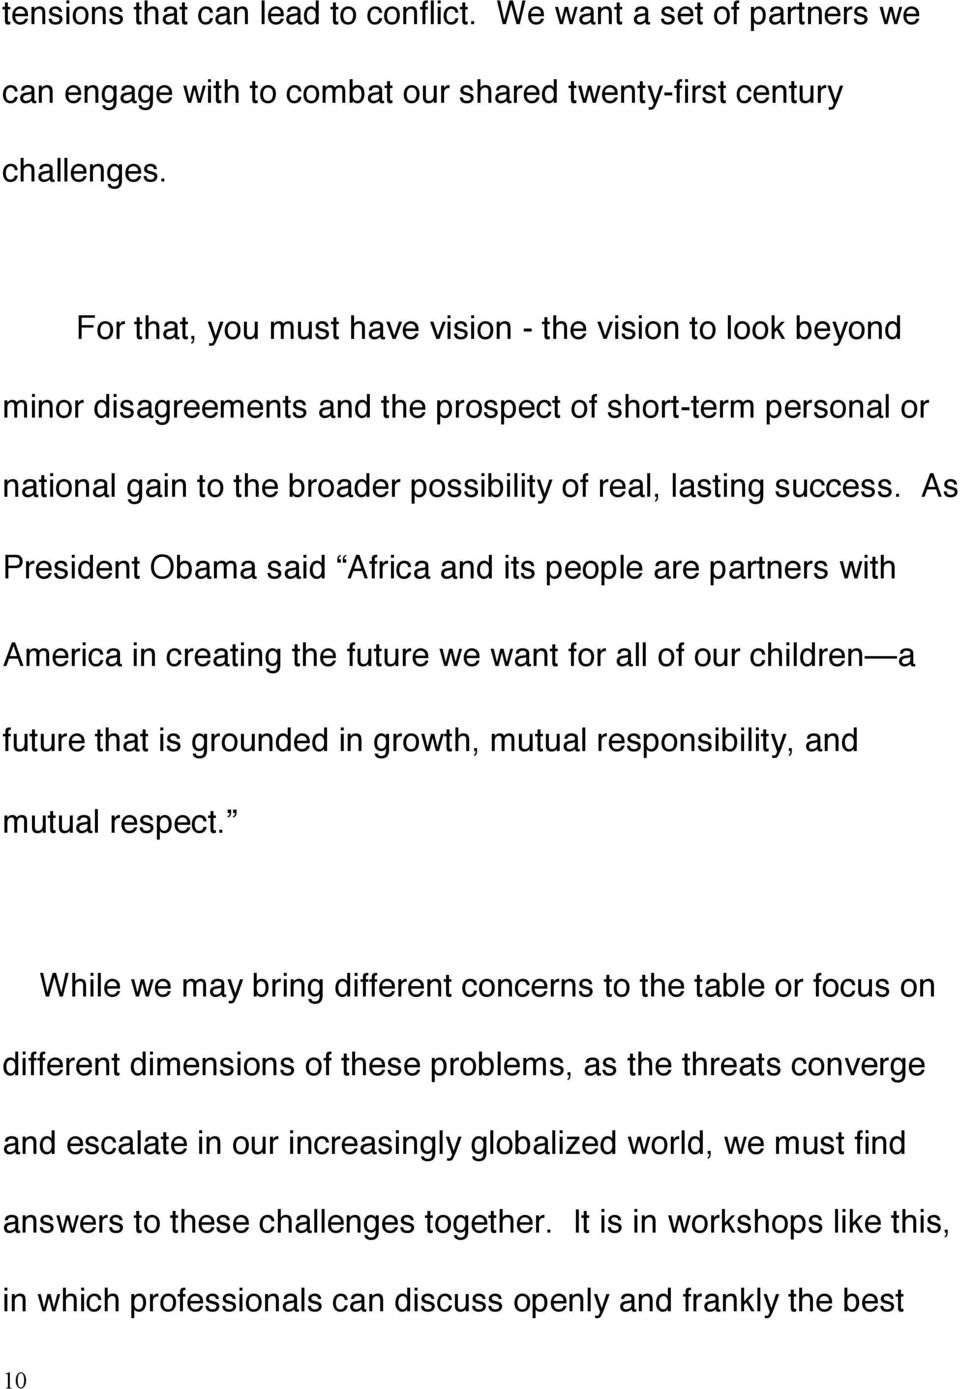 As President Obama said Africa and its people are partners with America in creating the future we want for all of our children a future that is grounded in growth, mutual responsibility, and mutual